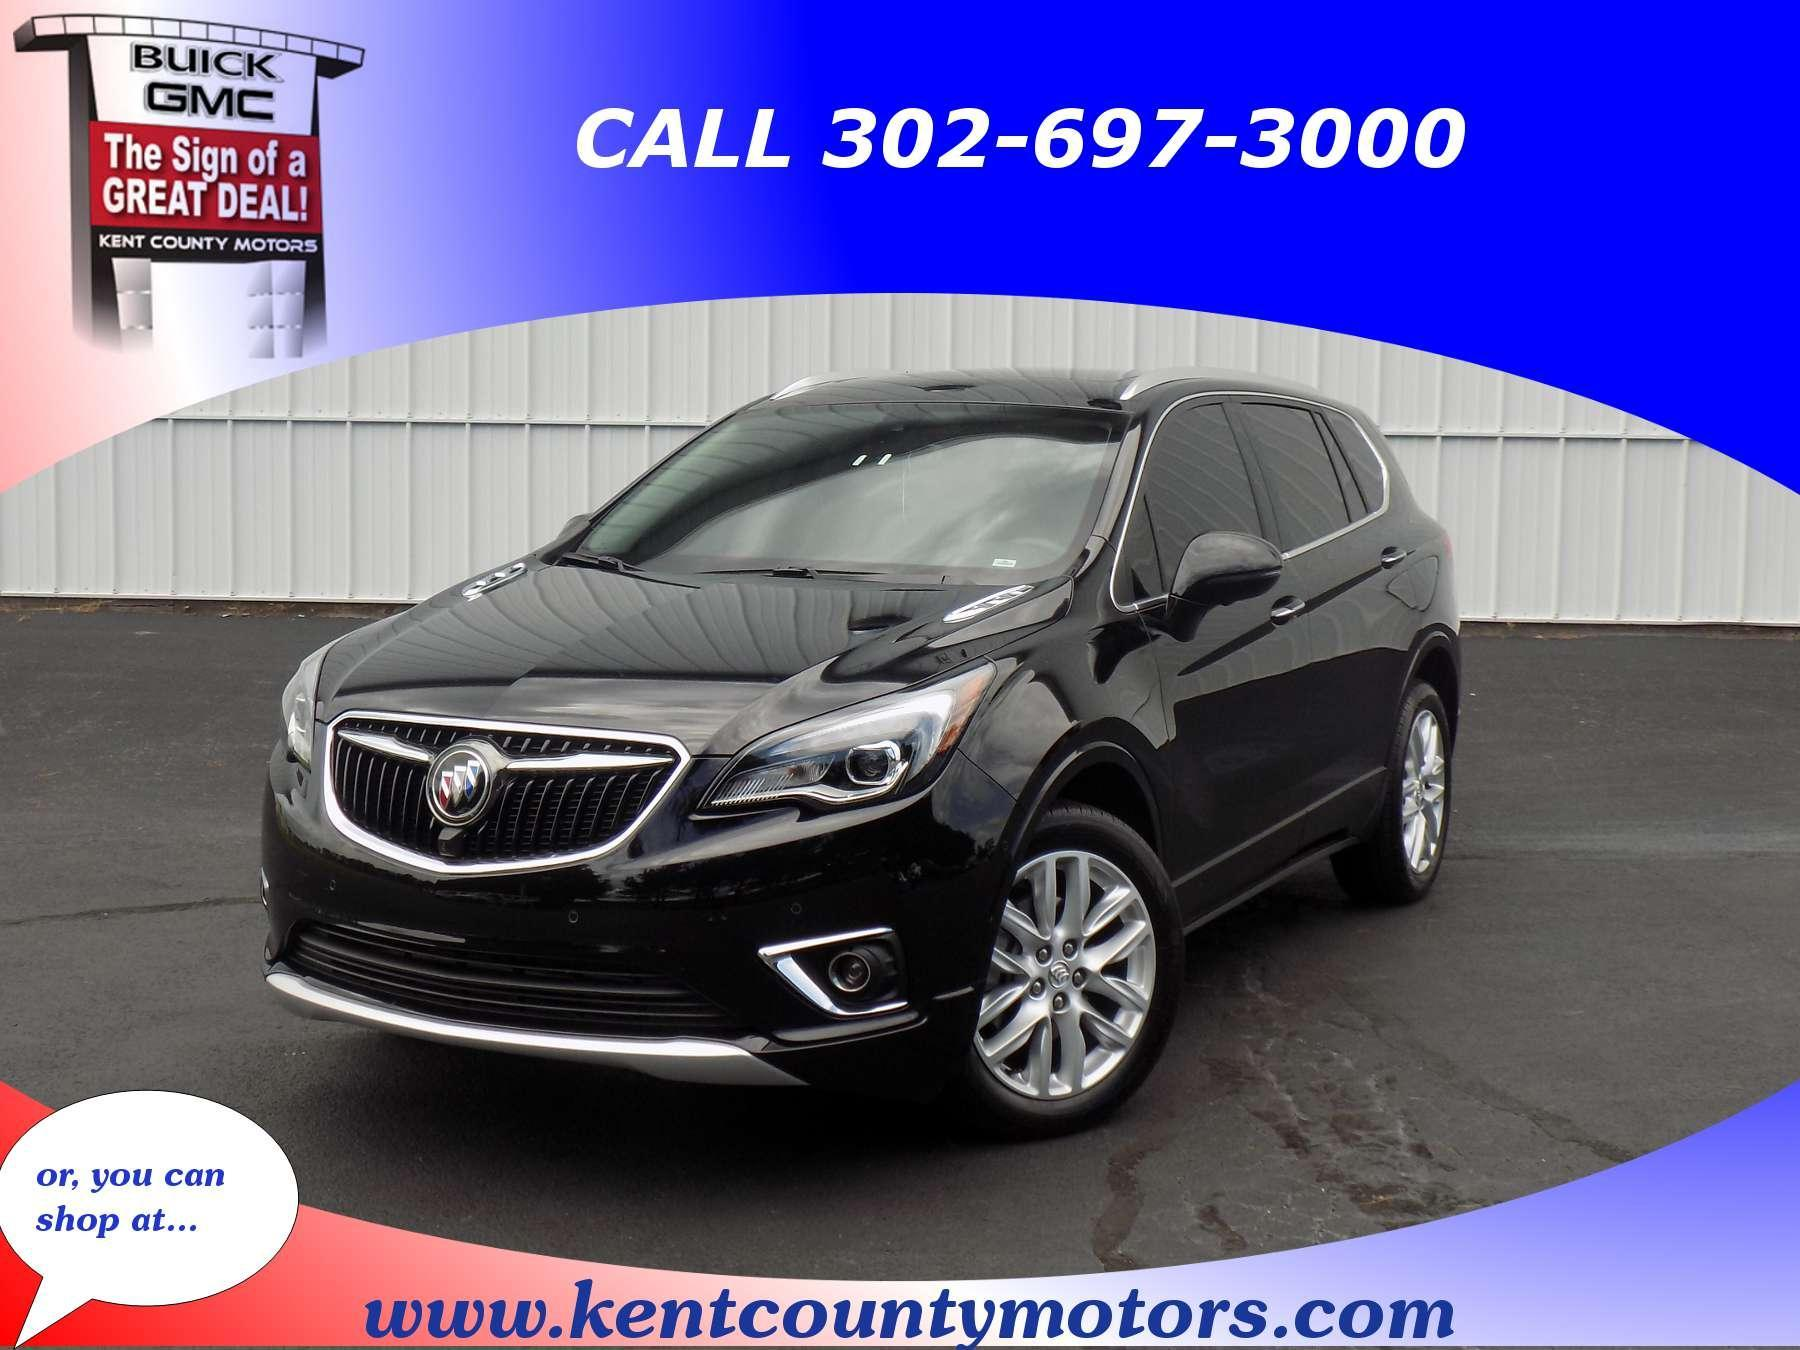 Car for Sale Kent Luxury New Used Cars for Sale In Dover De Kent County Motors